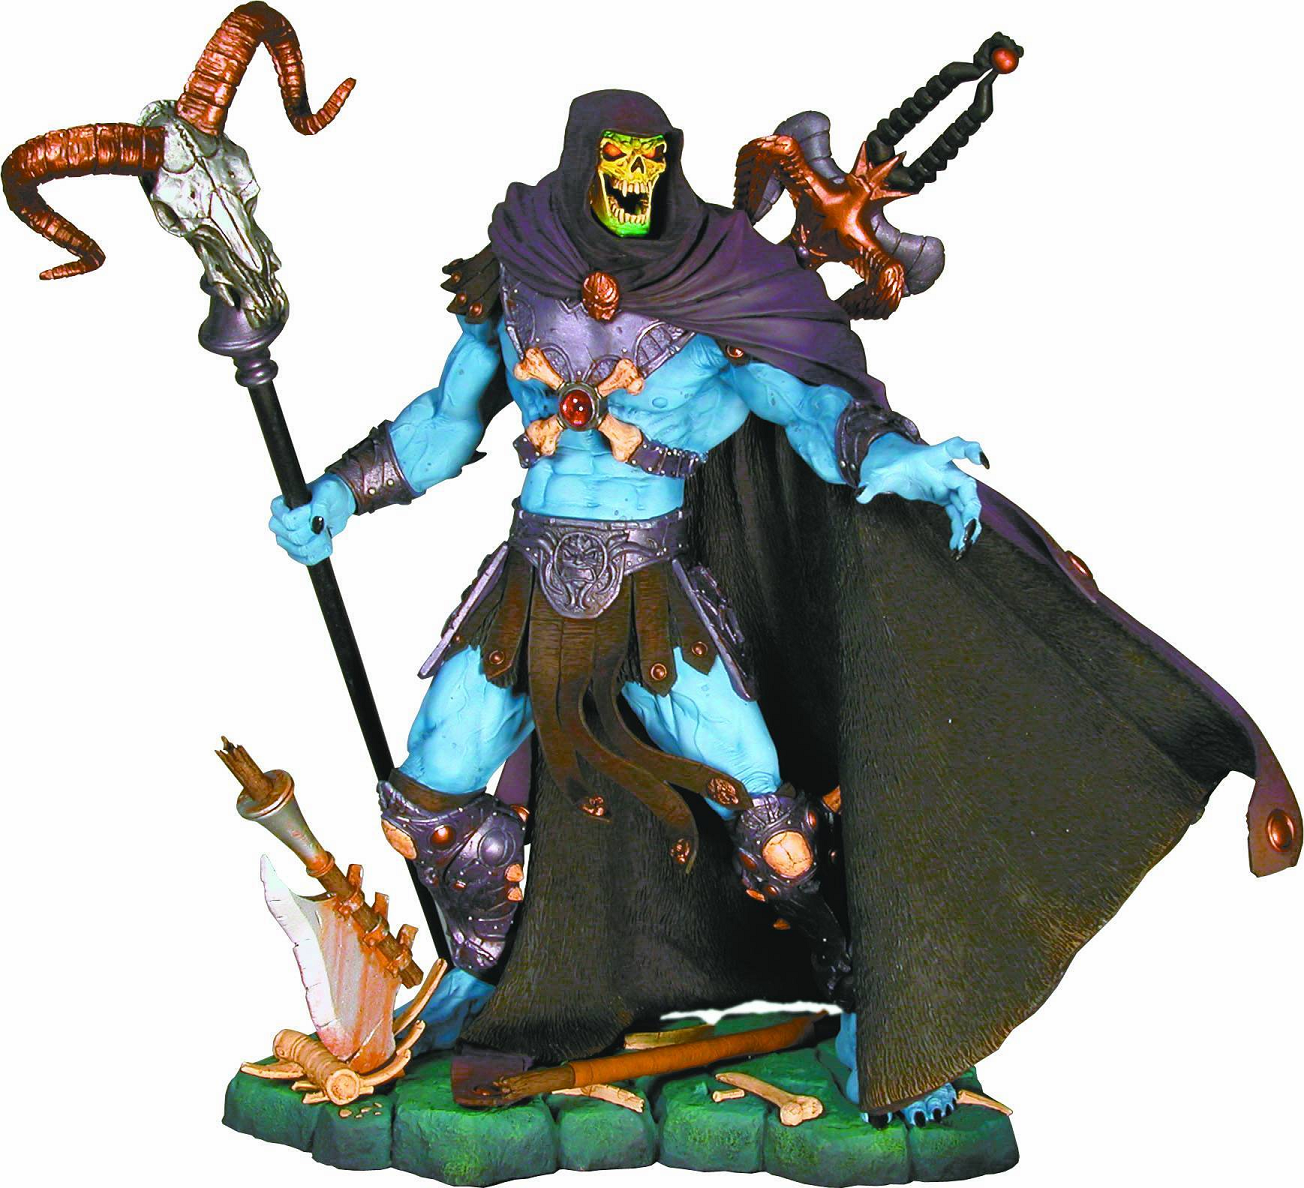 NECA Masters of the Universe Skeletor Resin Statue